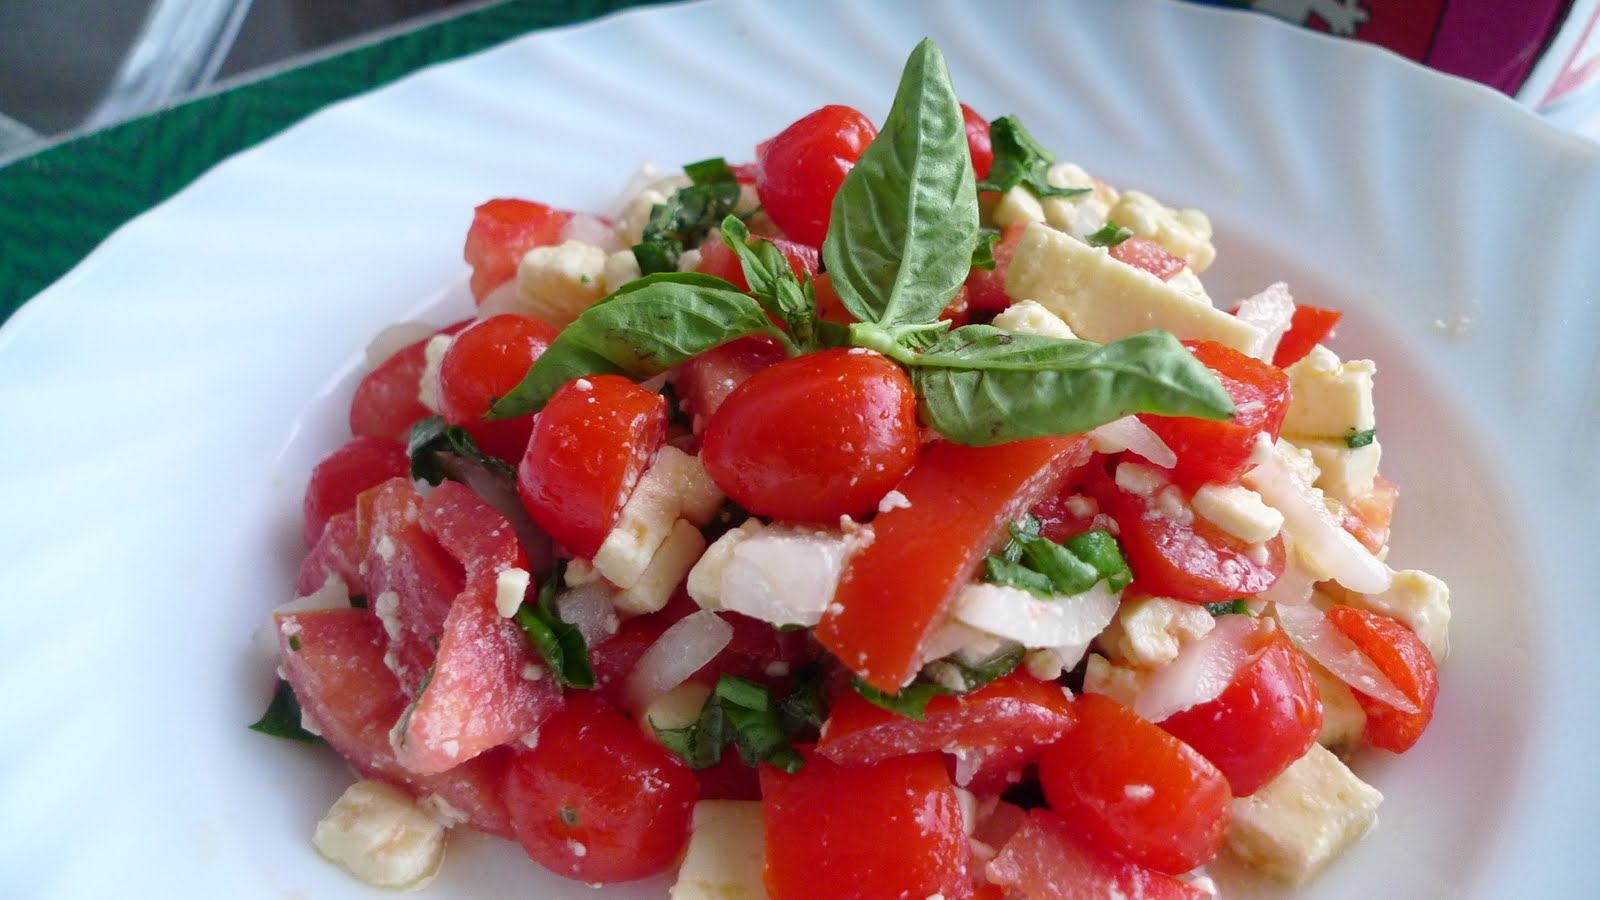 Tomato, basil and feta salad | munchin' in manila